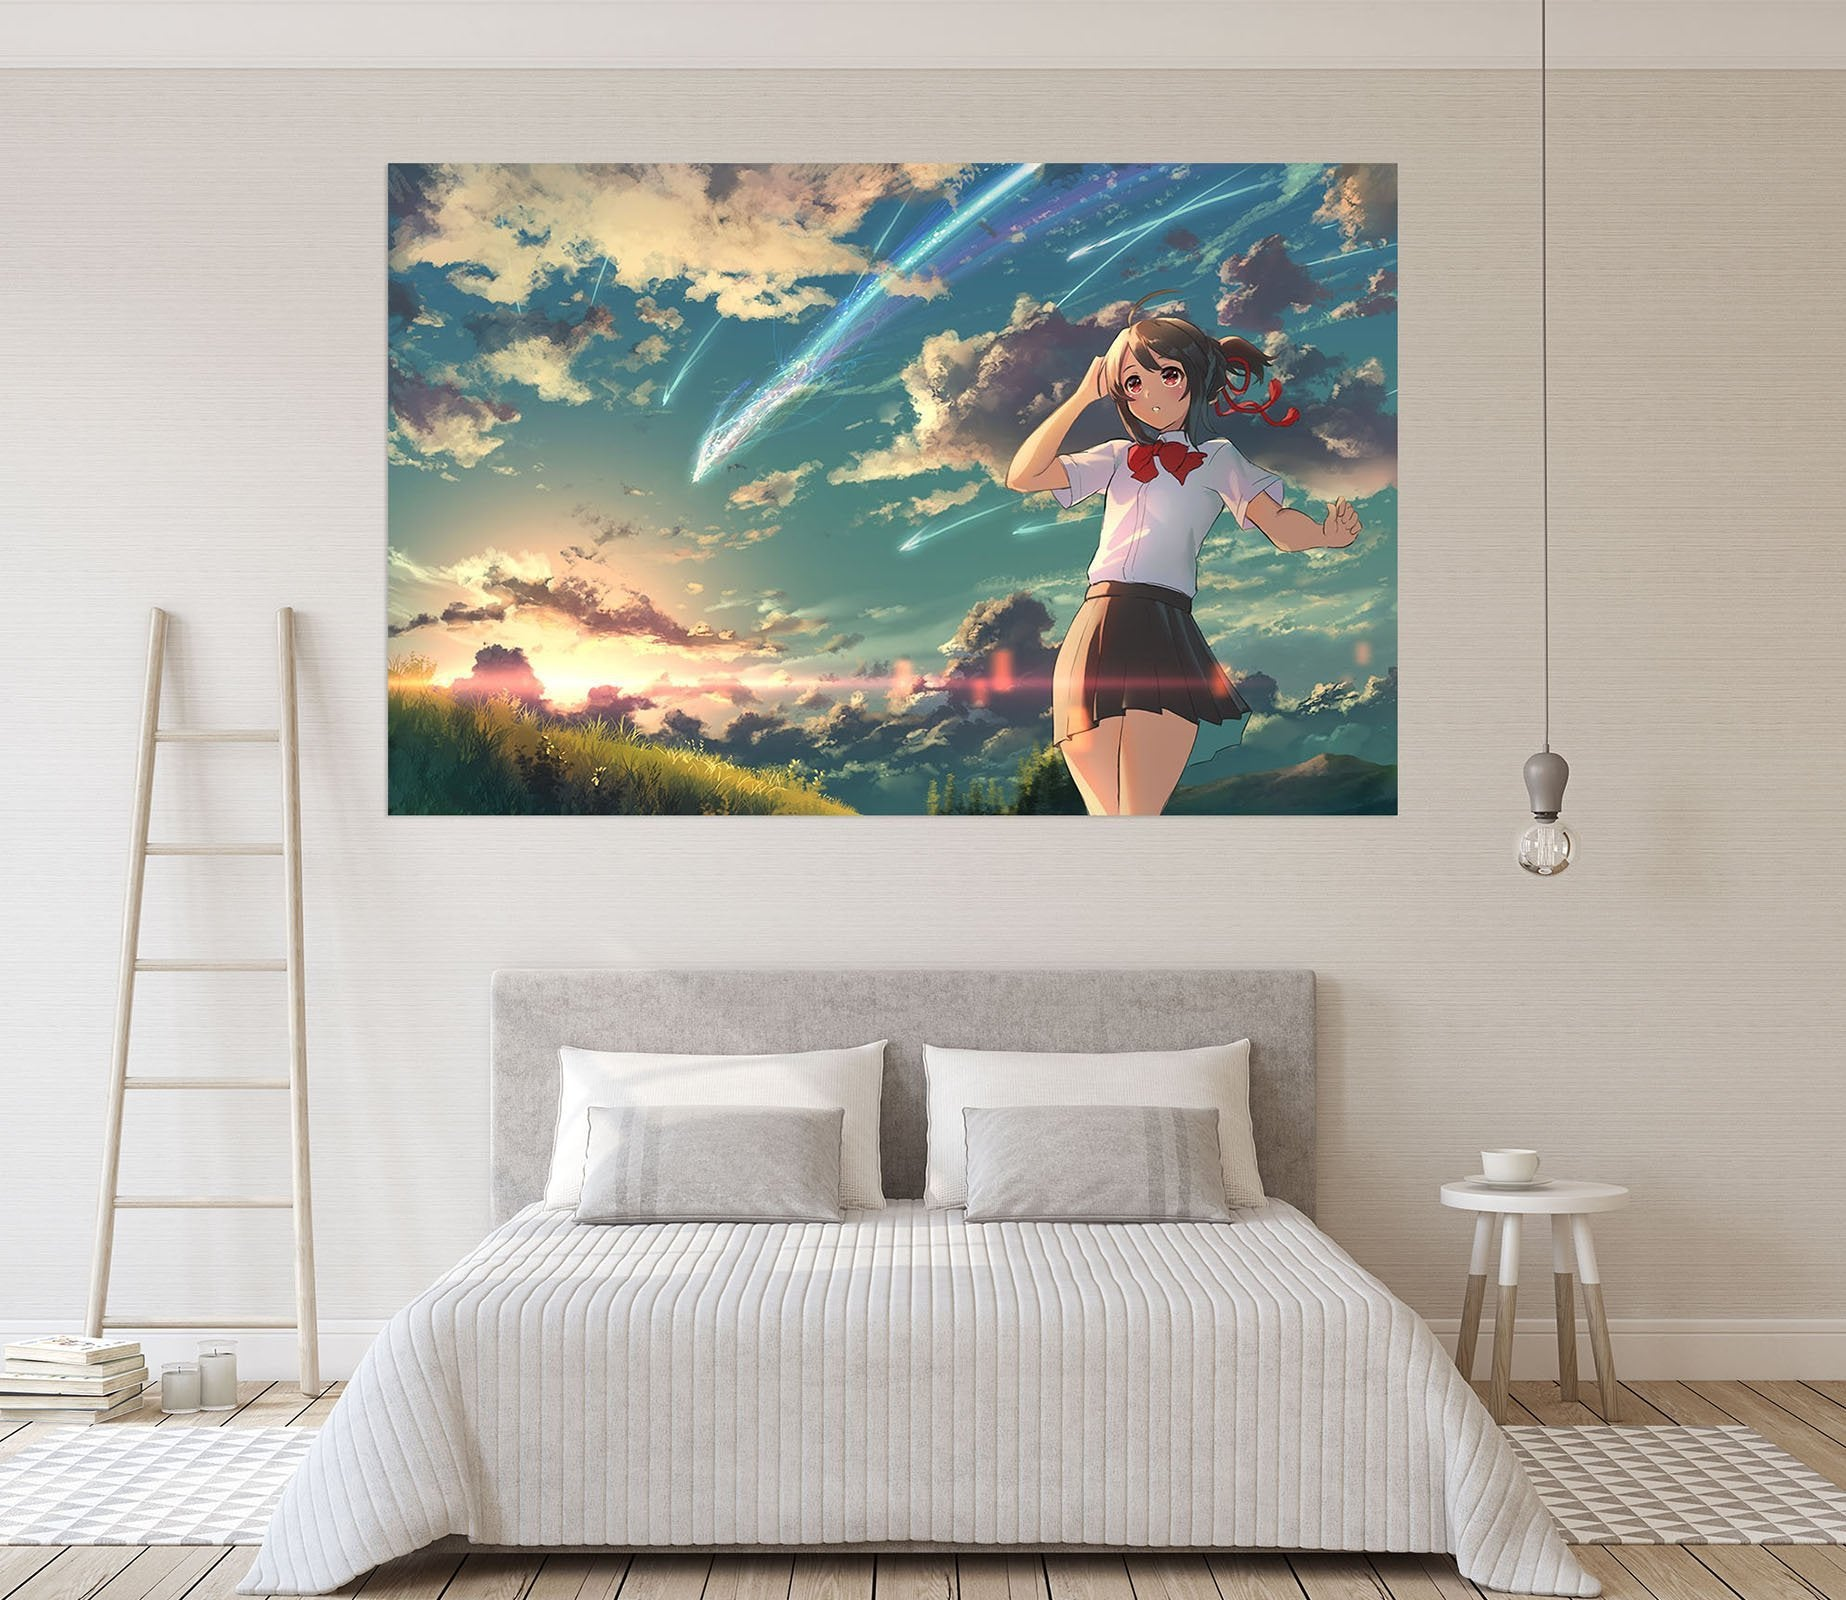 3D Your Name 485 Anime Wall Stickers Wallpaper AJ Wallpaper 2